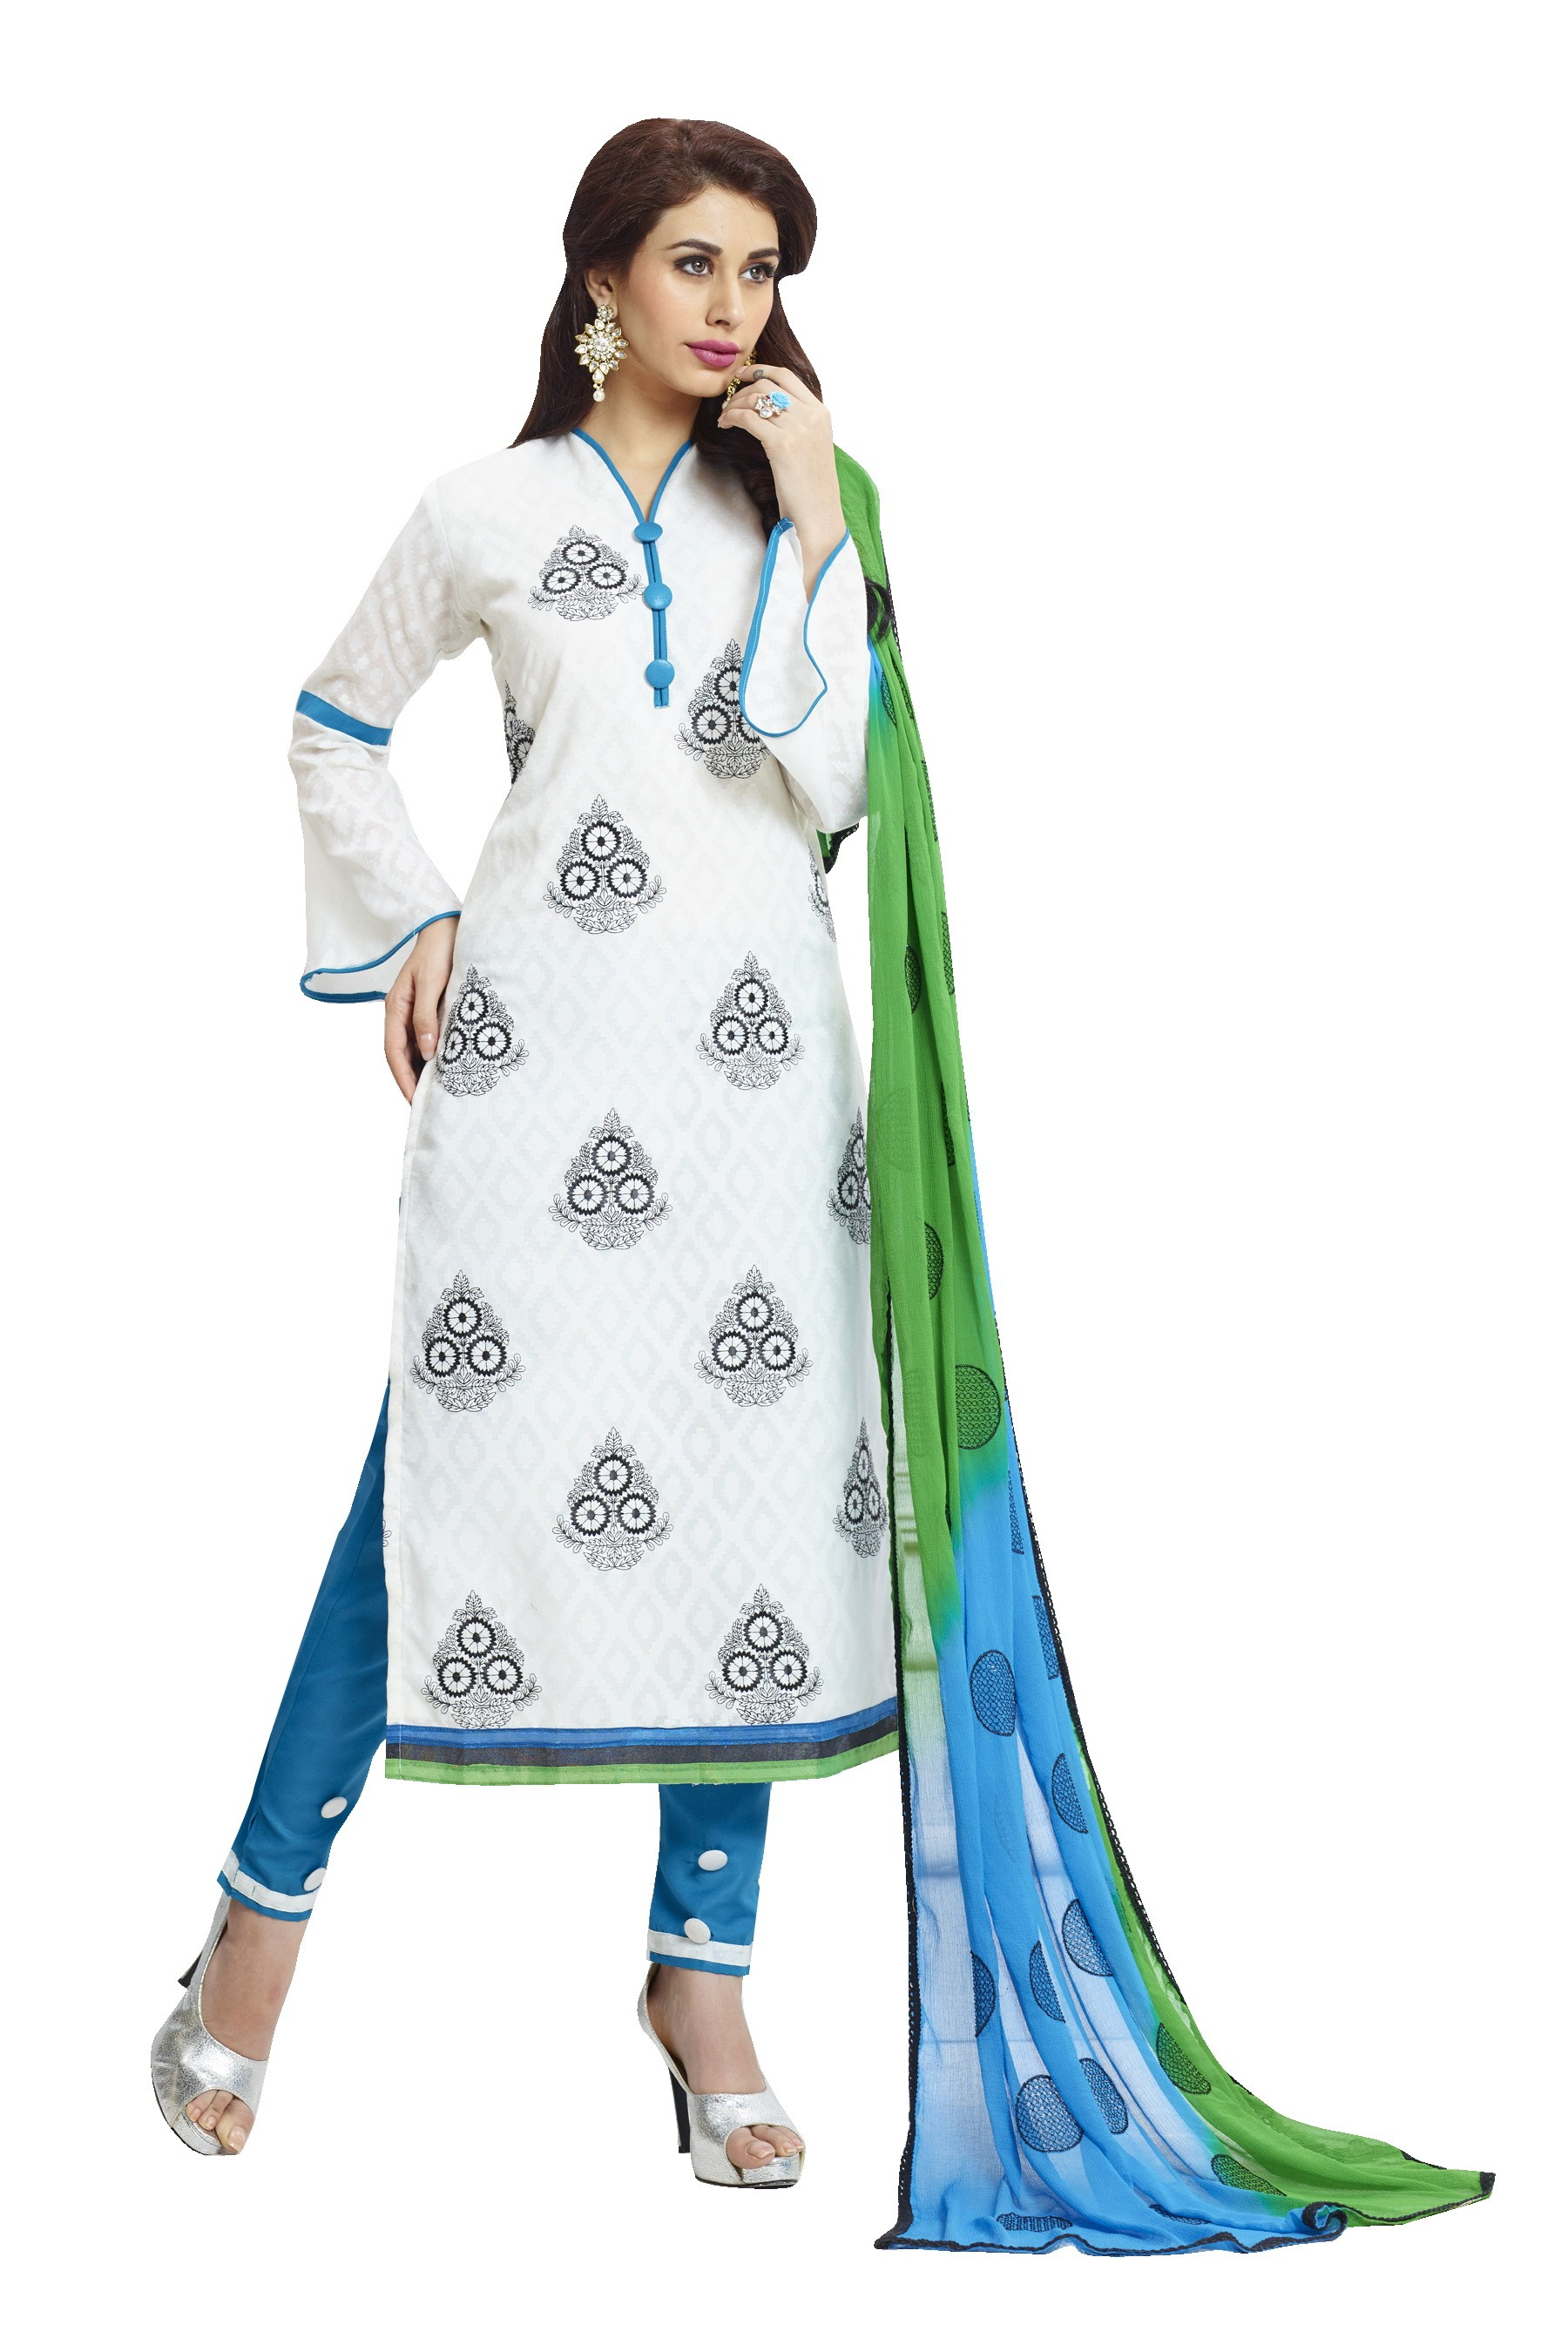 Cotton Jacquard White Salwar Suit - 1001B